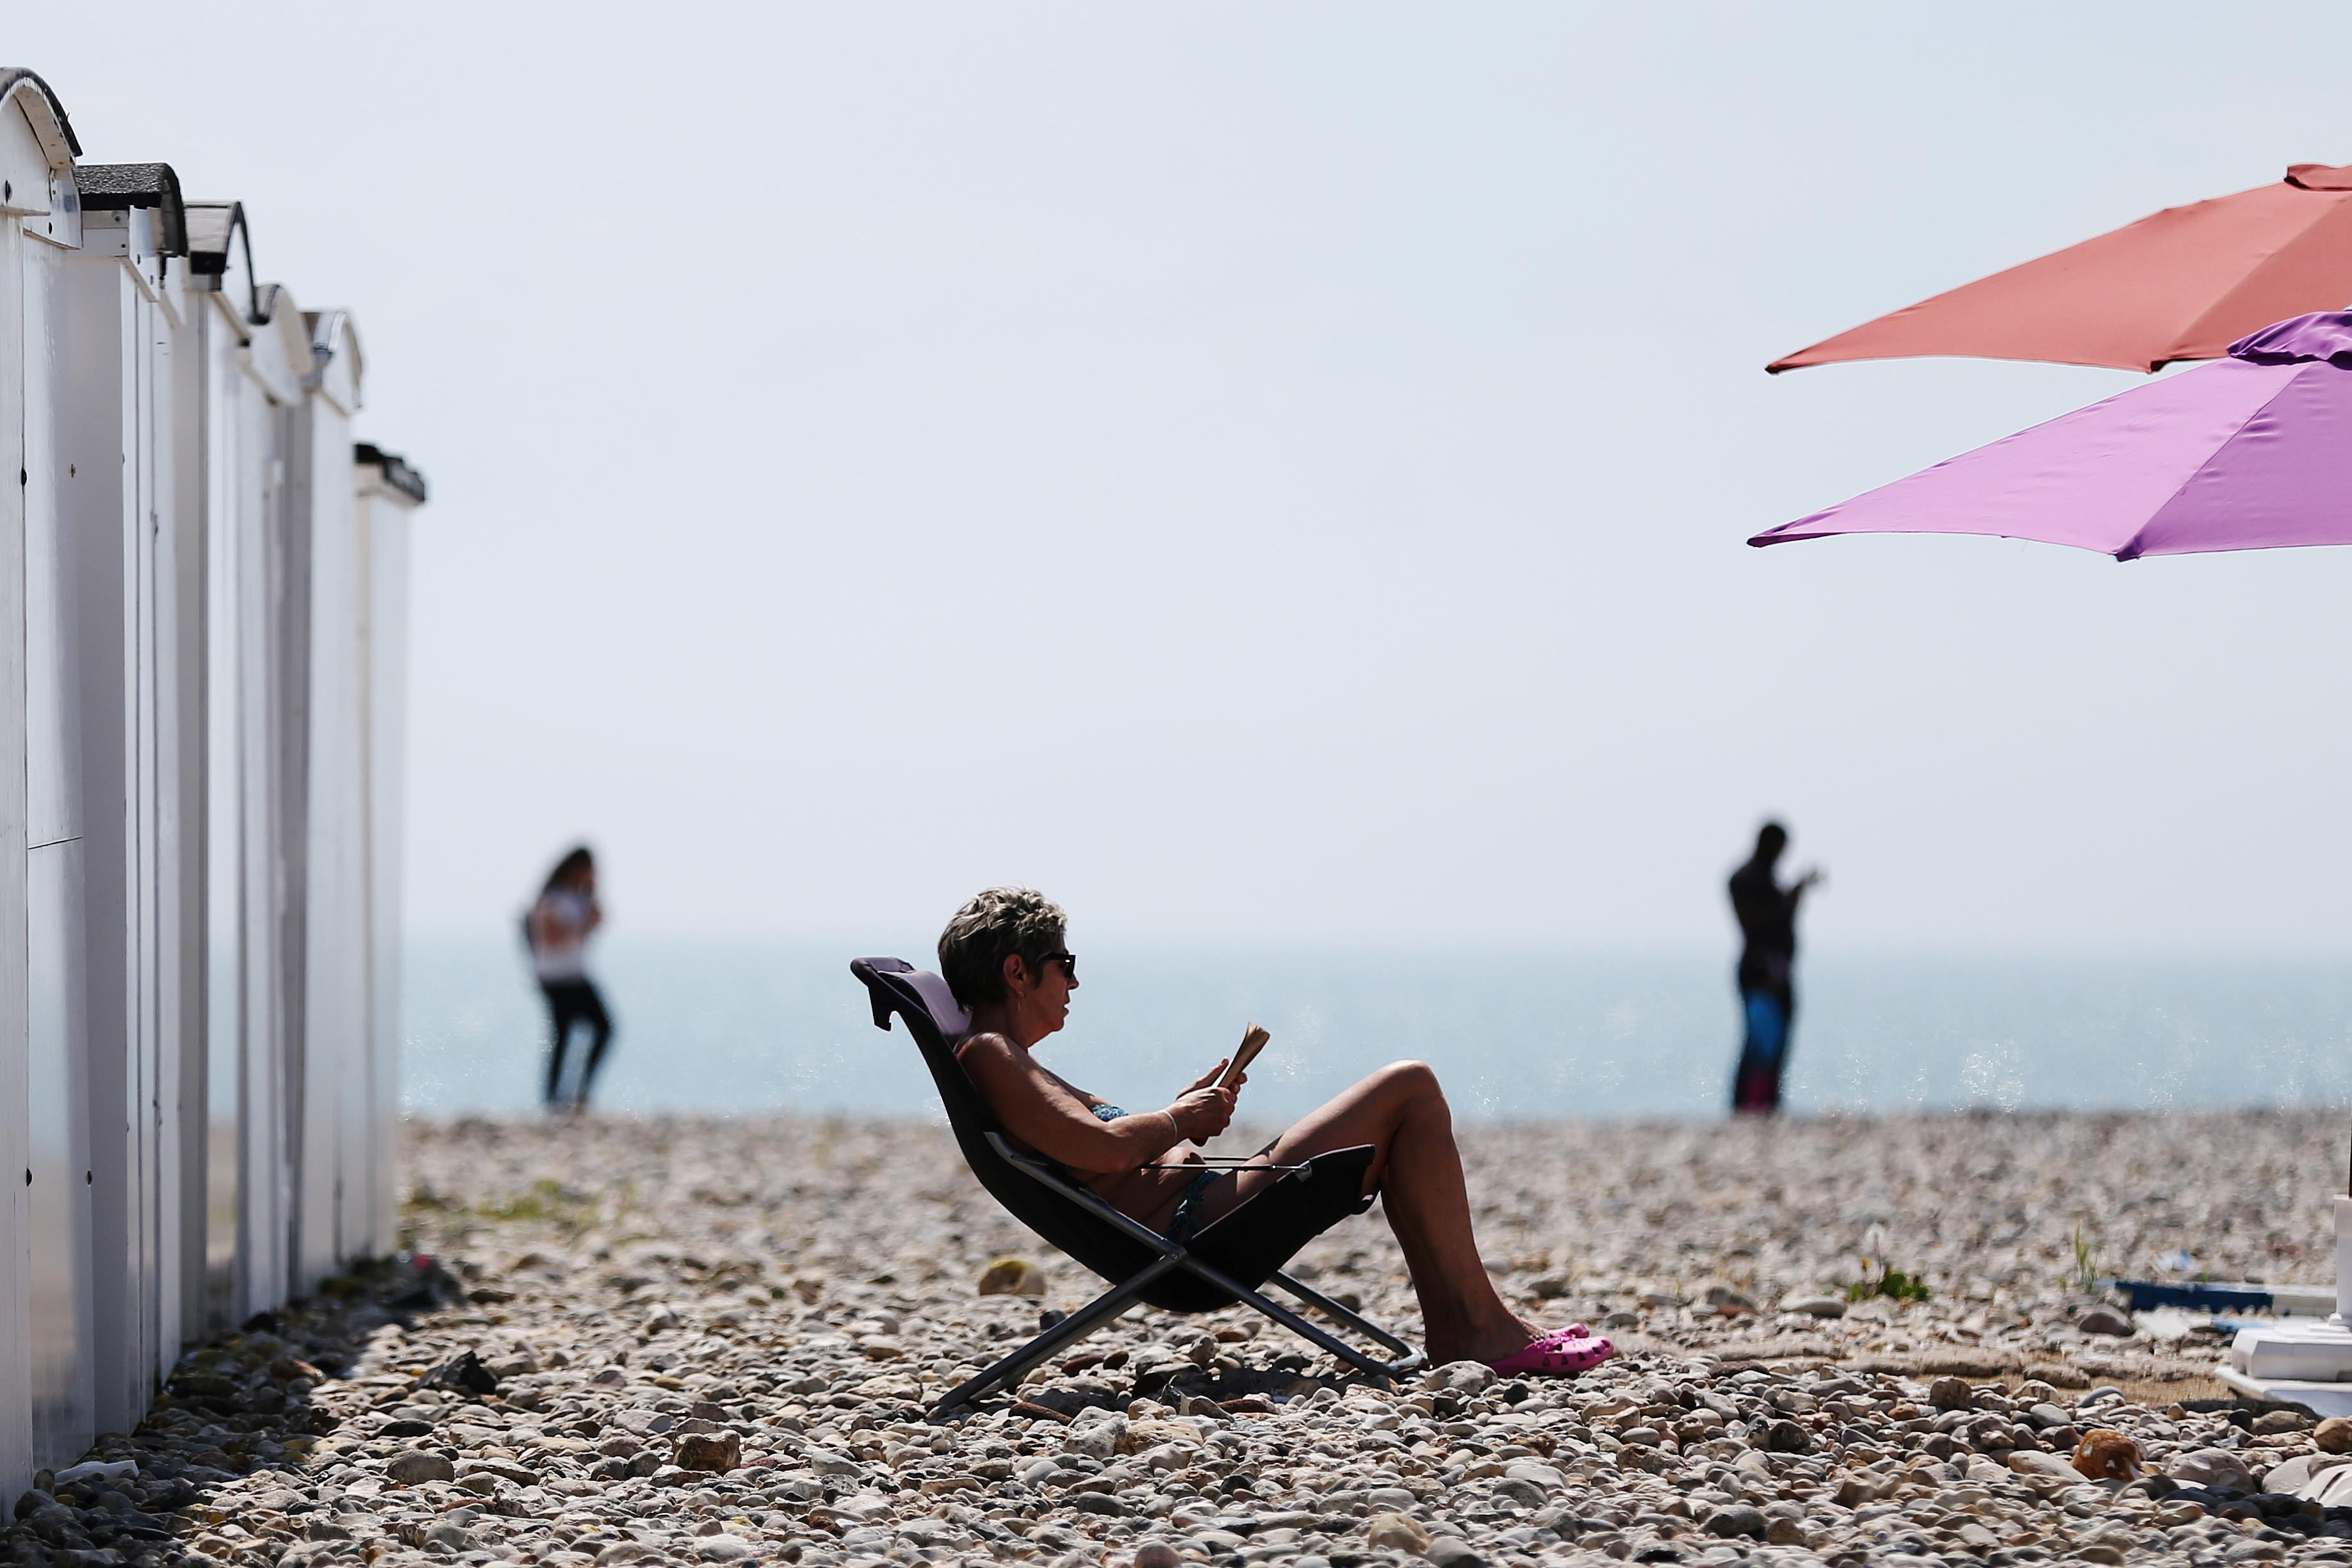 A woman sits on the beach in a deck chair reading on a sunny day in Le Havre, northwestern France, on May 27, 2016.